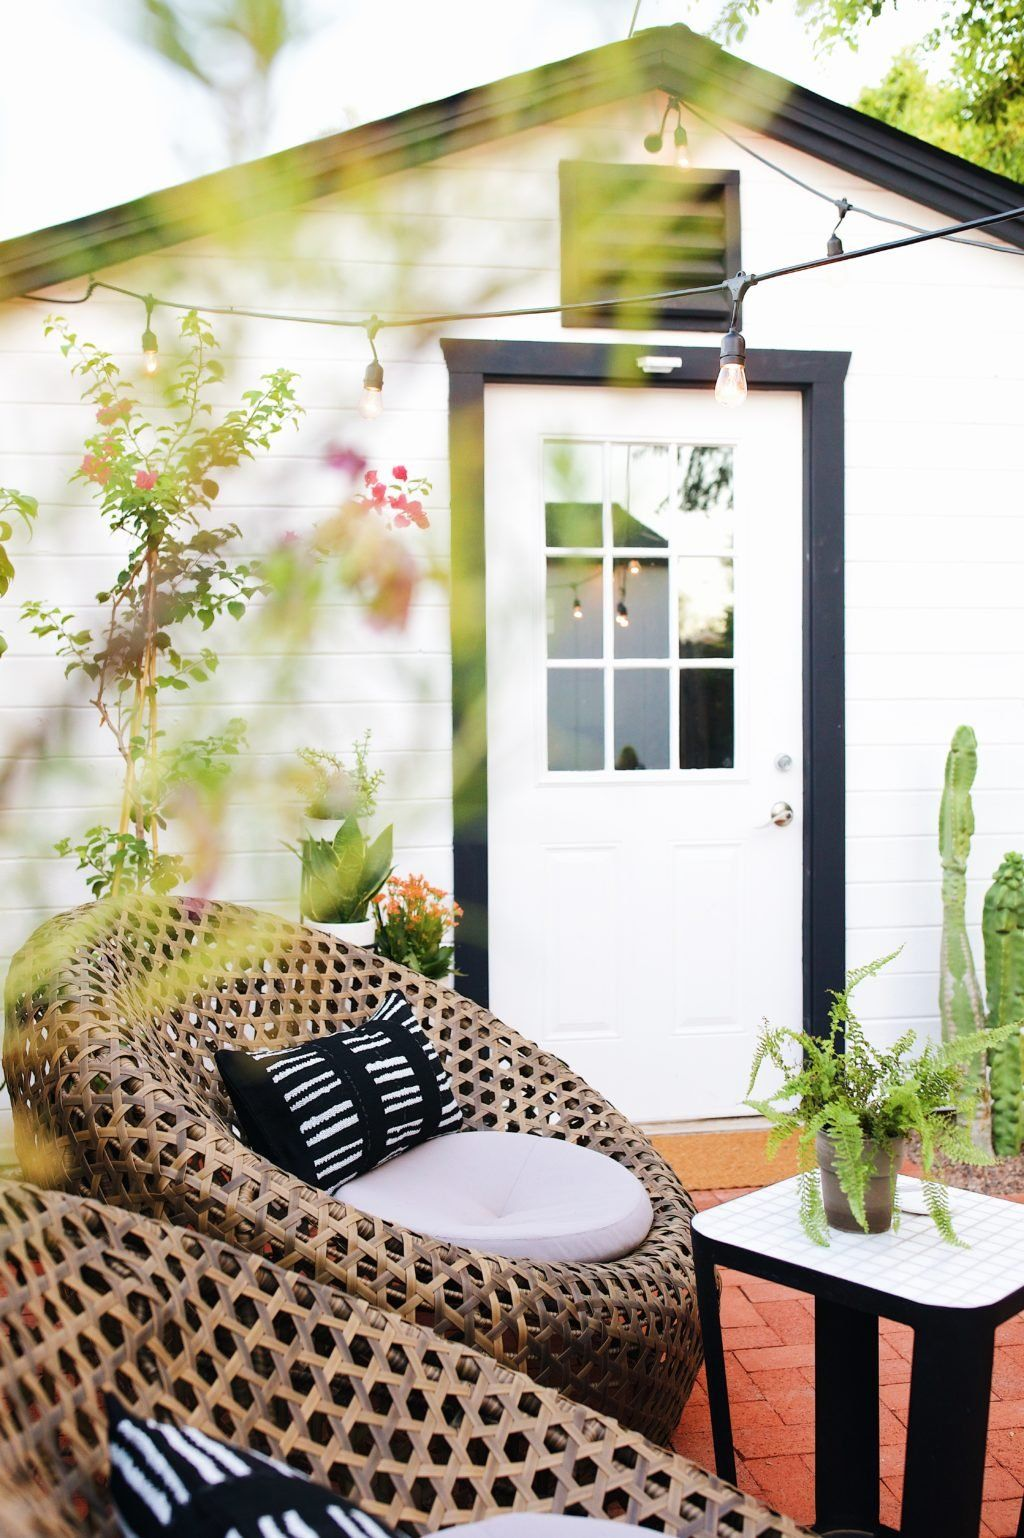 Our Montauk Nest Chairs Seen In New Darlingsu0027 Patio Reveal!